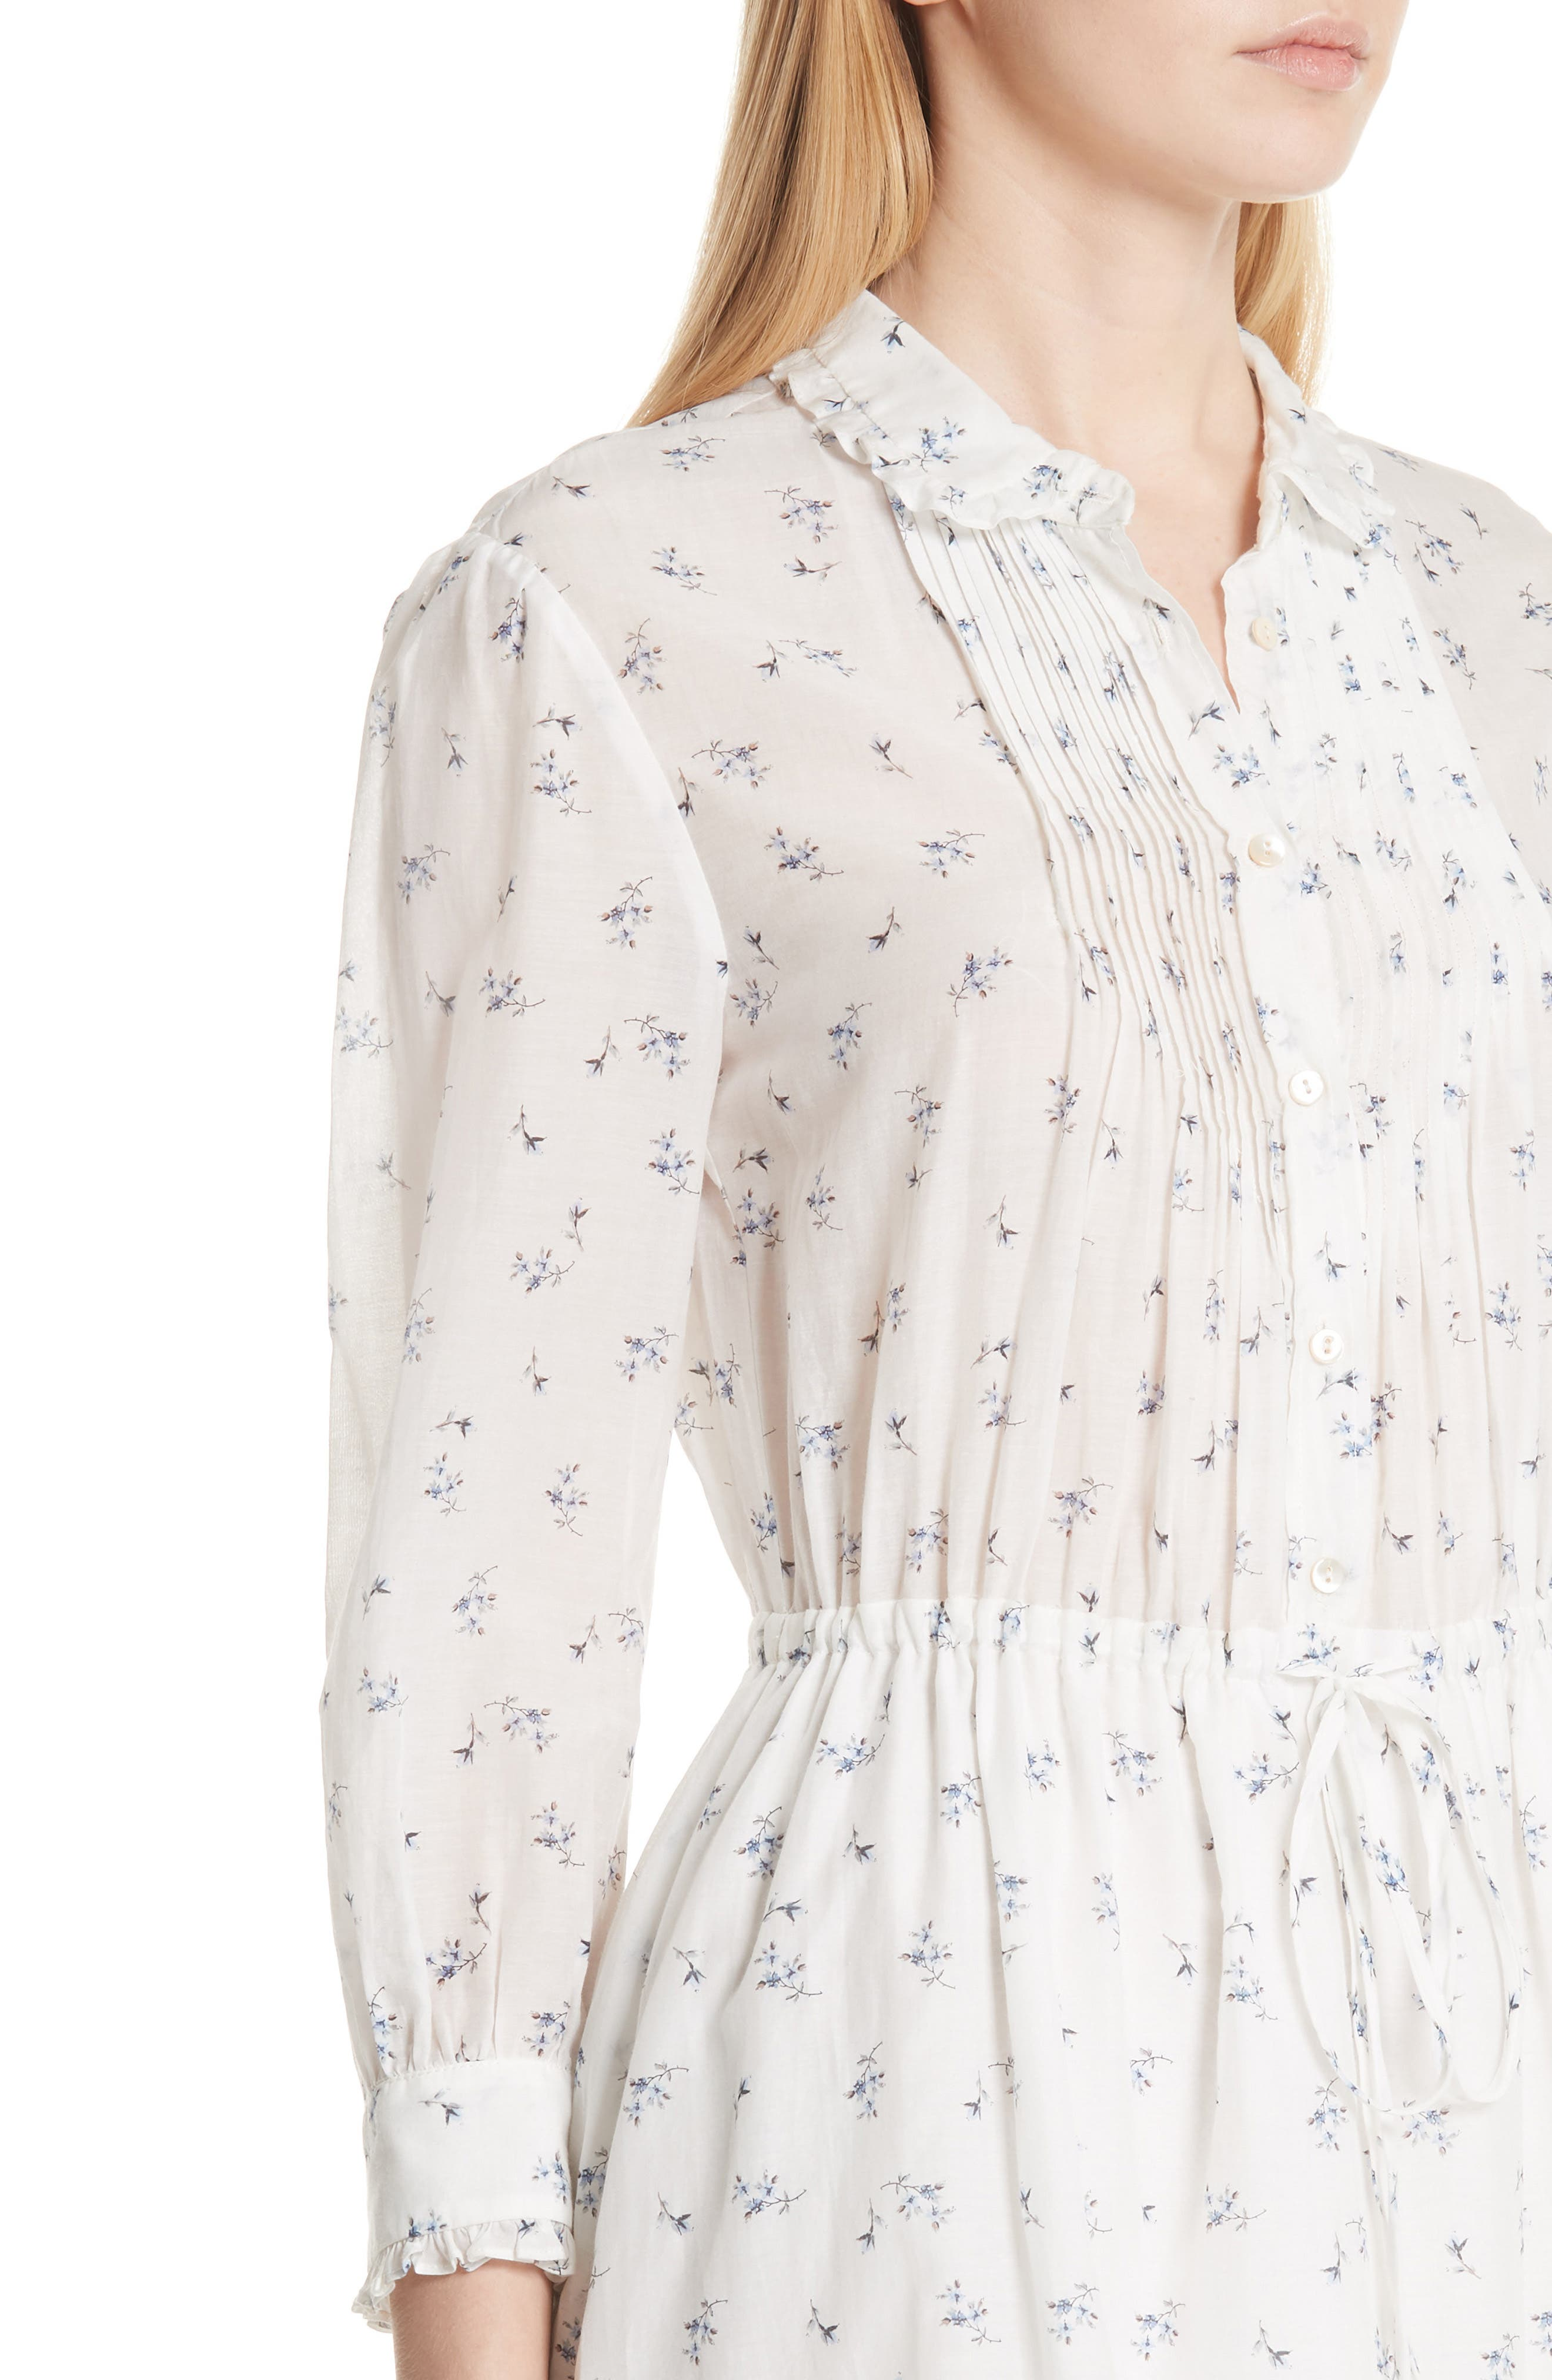 Floral Sprig Shirtdress,                             Alternate thumbnail 4, color,                             Snow Combo